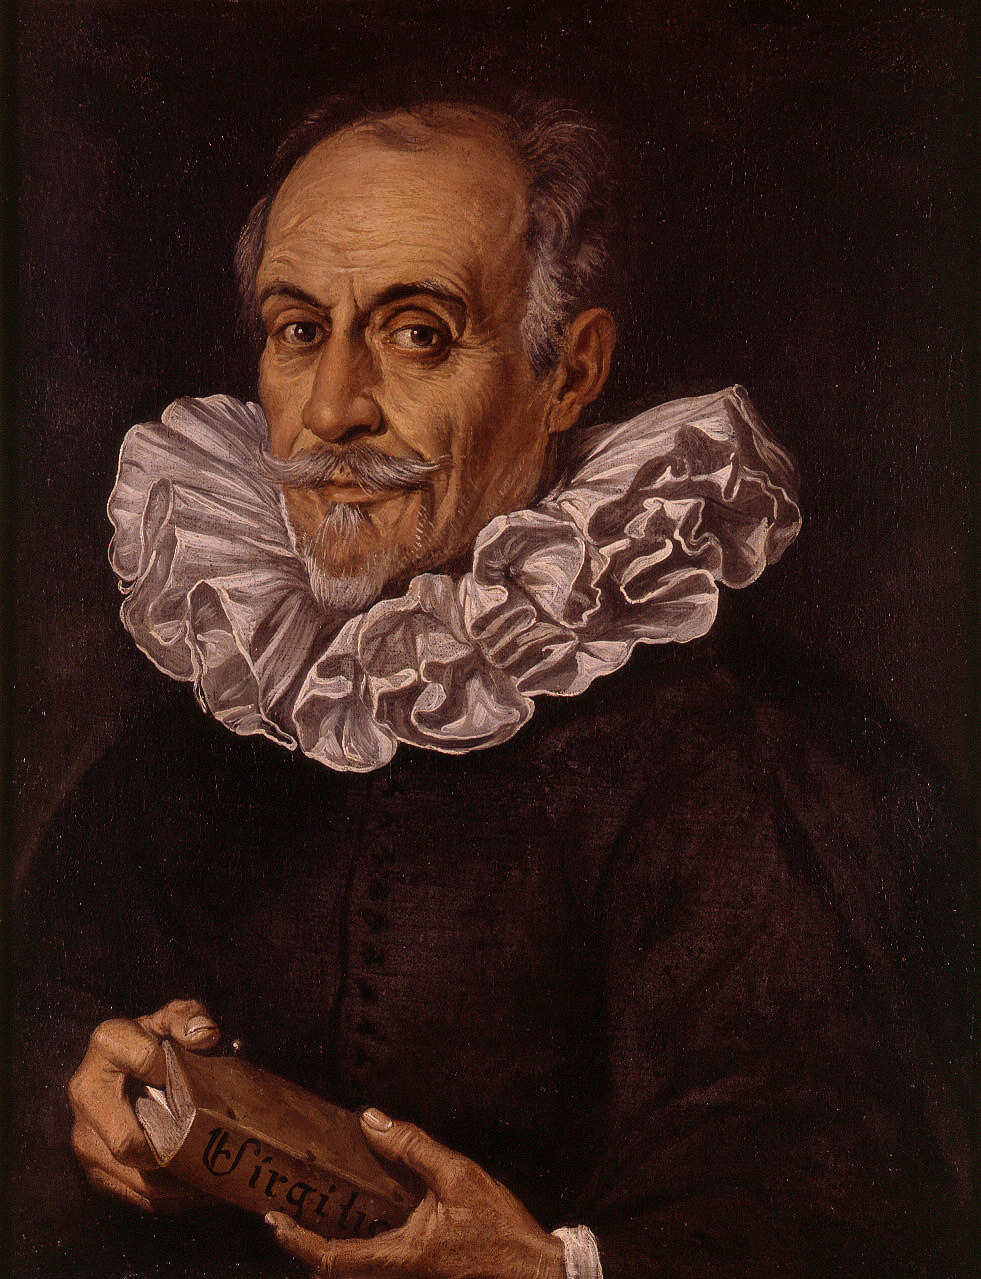 "spanishbaroqueart:  Juan Ribalta Portrait of the Poet Gaspar Aguilar  Gaspar Aguilar (Valencia, 1561 - Valencia, 1623) was a Spanish poet and dramatist, one of the great playwrights of the Spanish Golden Age. Aguilar was one of the founders of the Acadèmia dels Nocturns (""The Academy of Night""), for which he adopted the pen name of Sombra, meaning 'Shadow'."